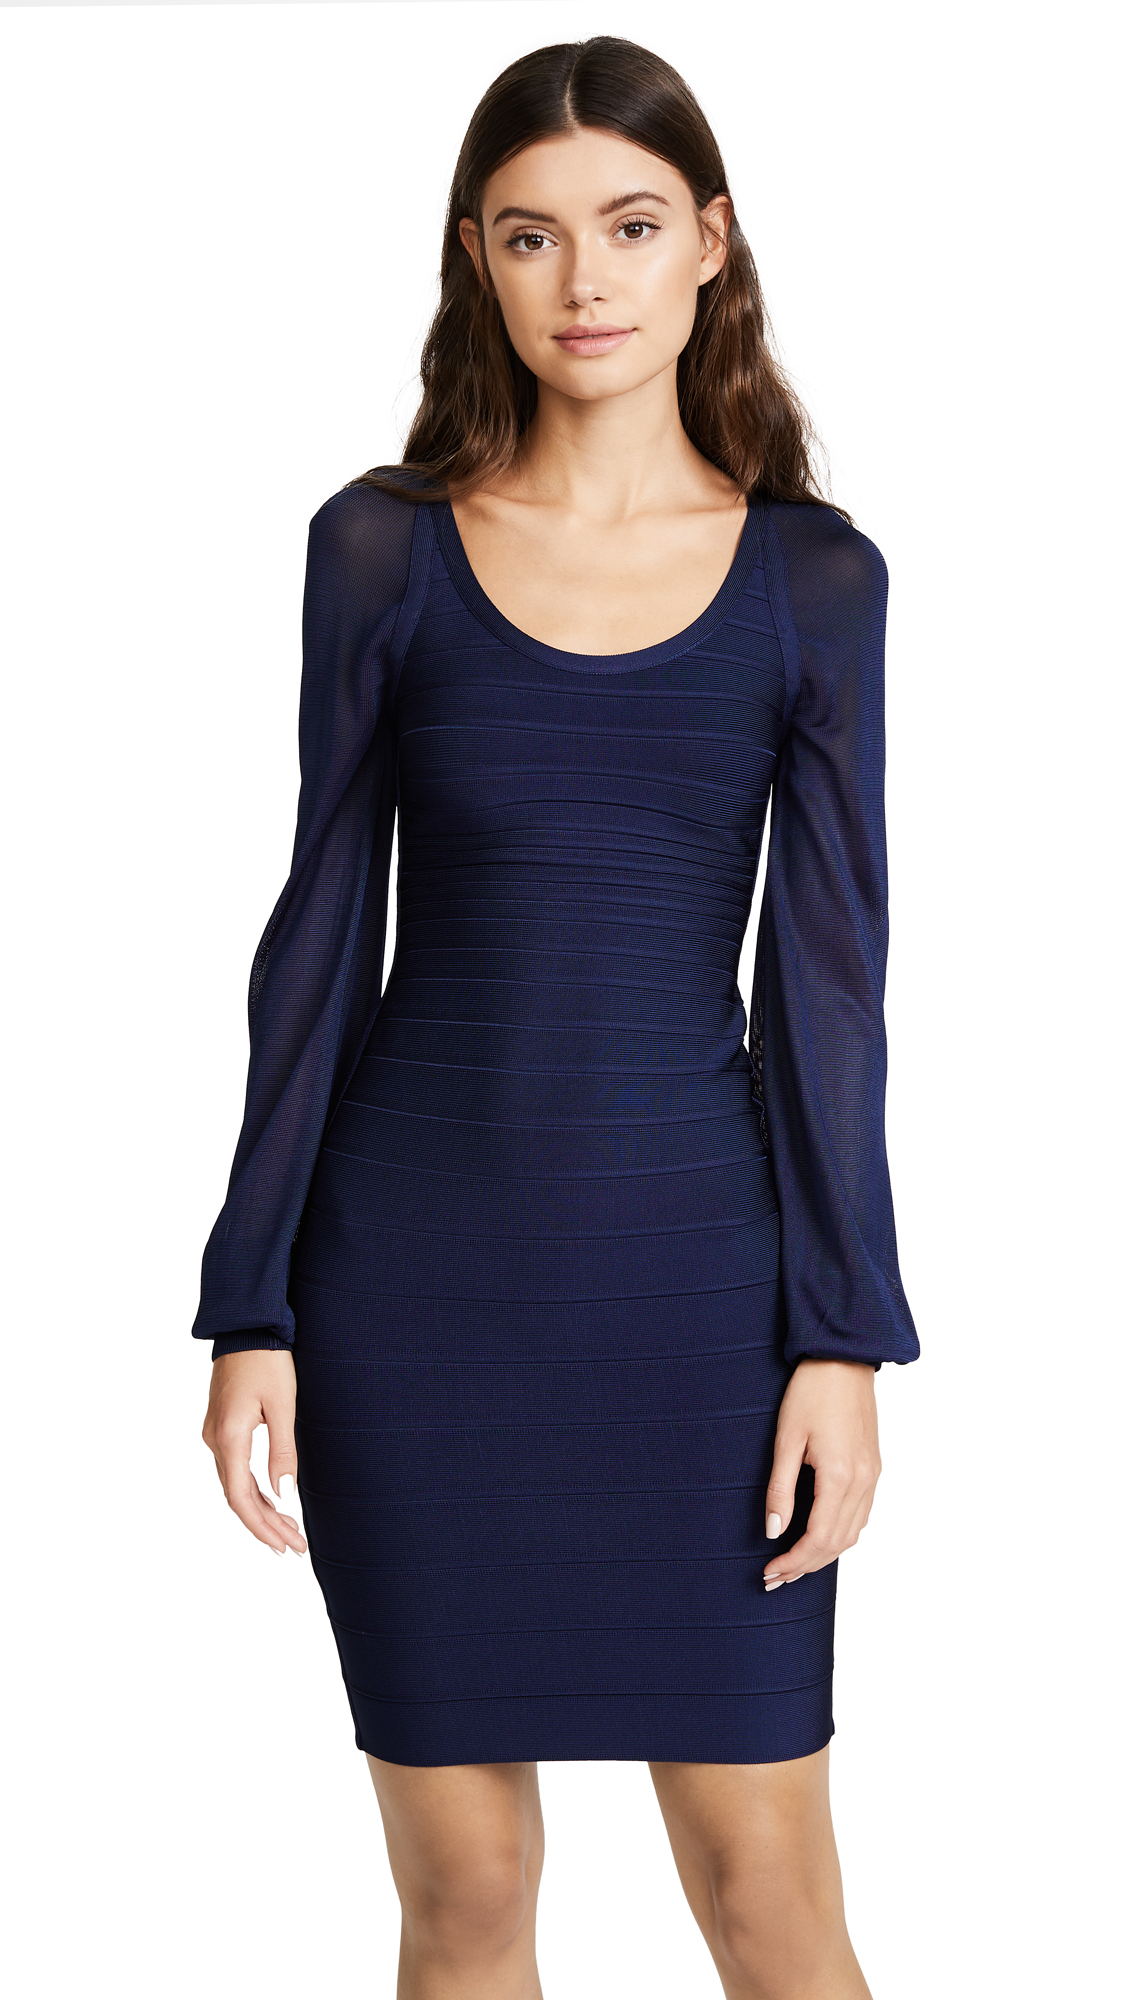 Herve Leger Laurie Dress - Classic Blue